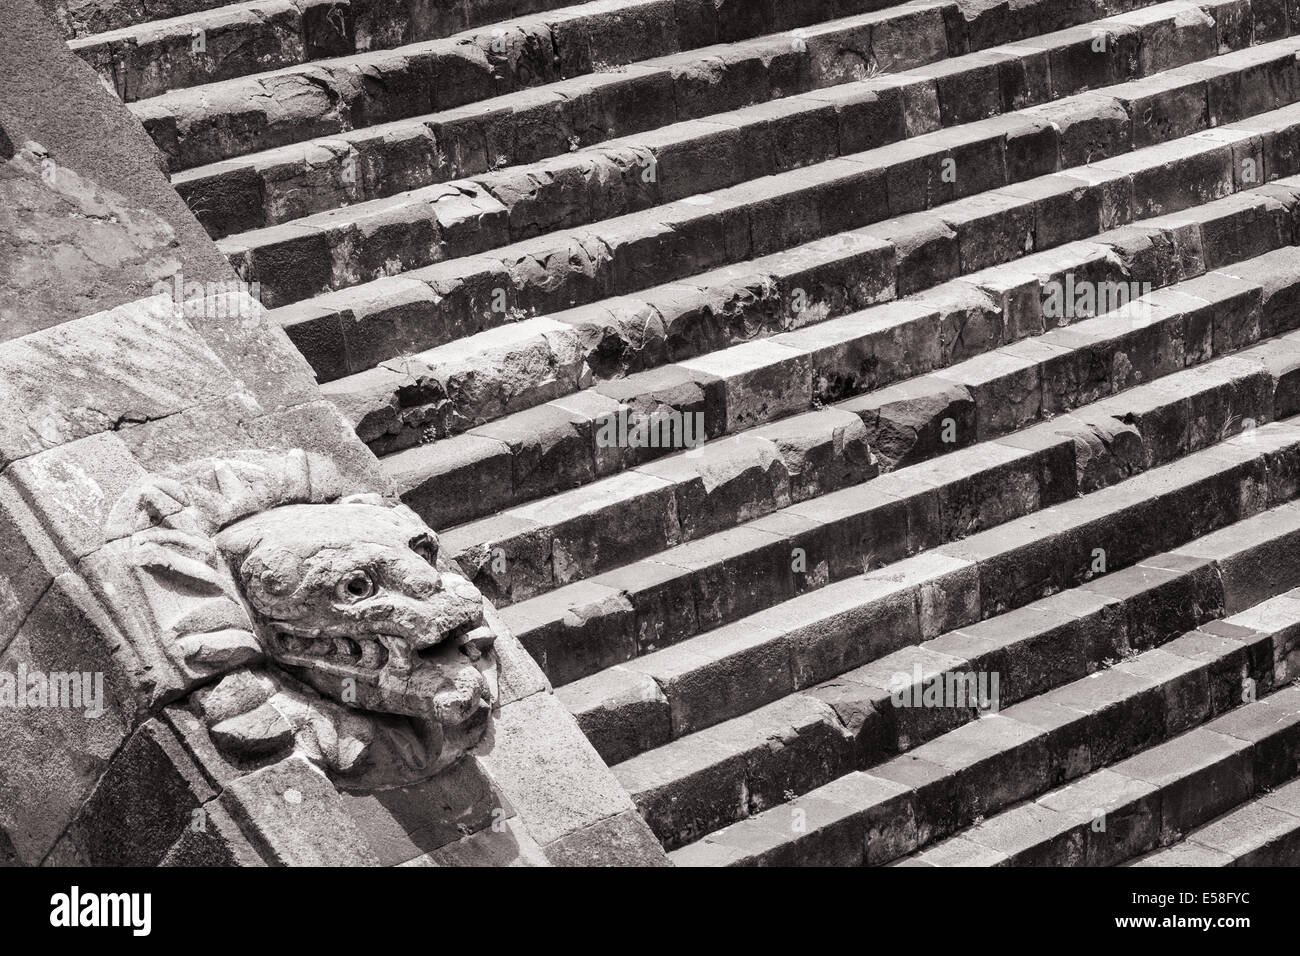 Monochrome image of a serpent head and steps at the temple of Quetzalcoatl, Teotihuacan, Mexico. - Stock Image